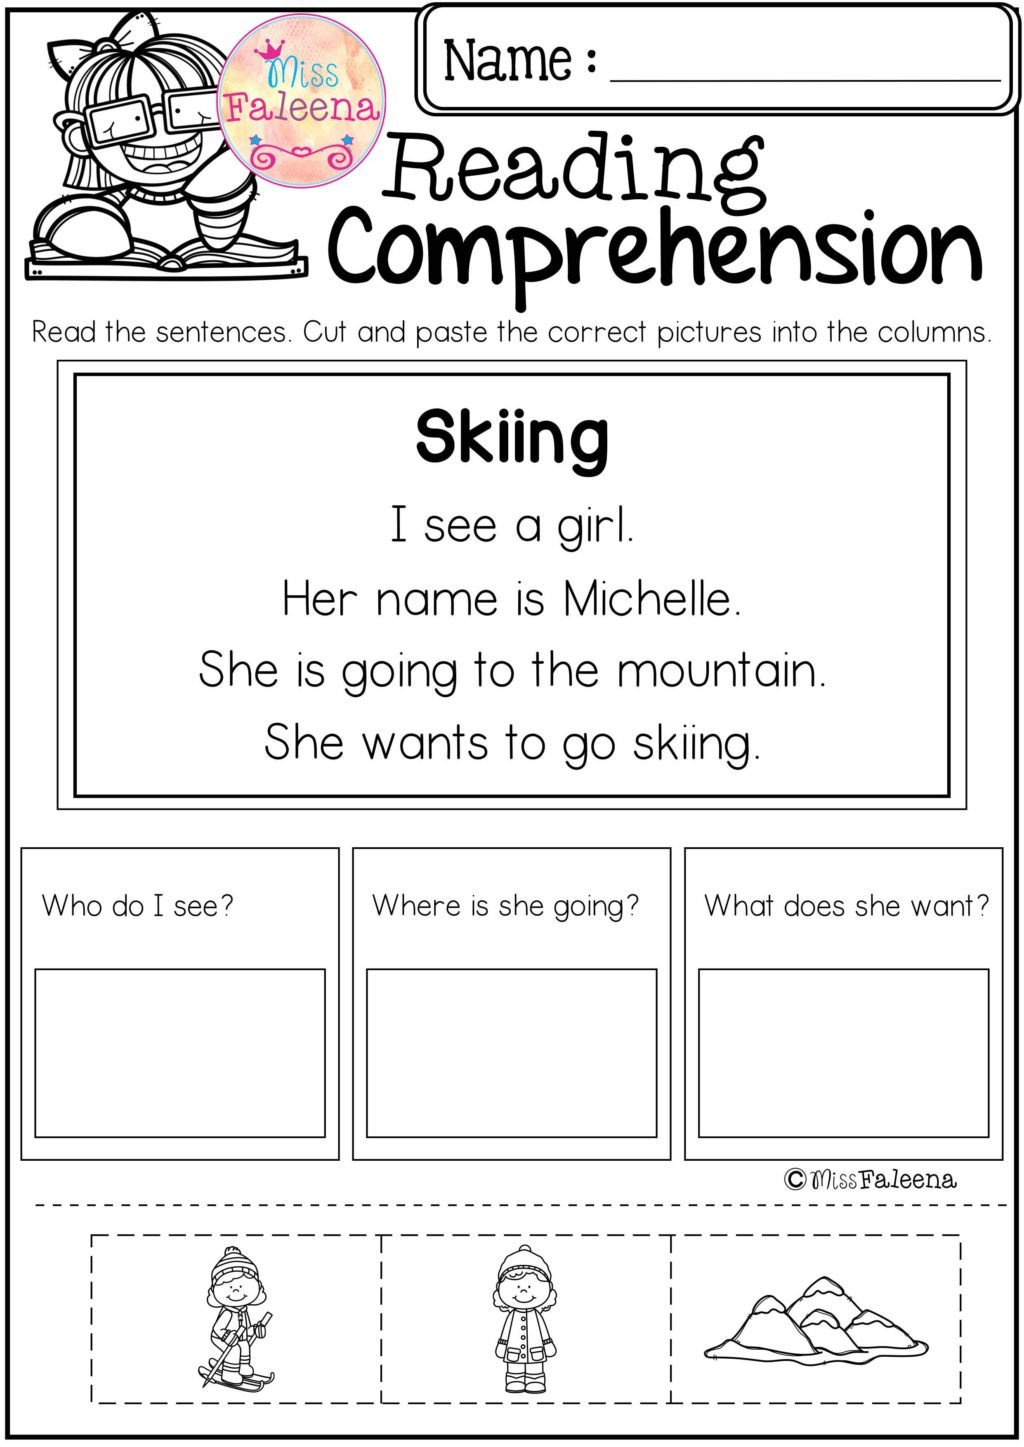 Complete Sentence Worksheets 1st Grade Math Worksheet Math Worksheet Worksheets for 1st Grade